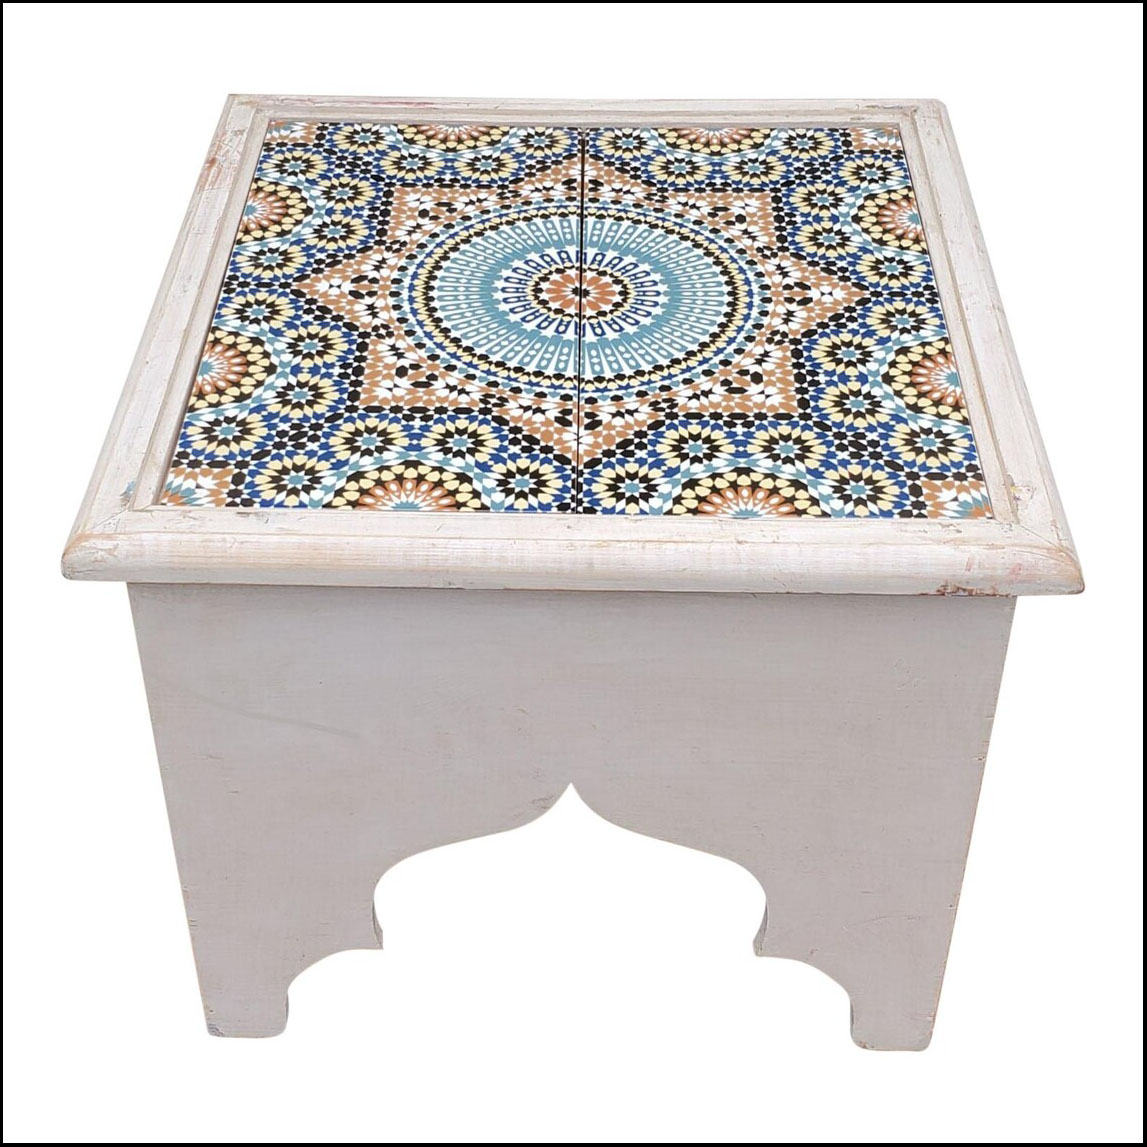 White Moroccan Wooden Side Table, Tile Top